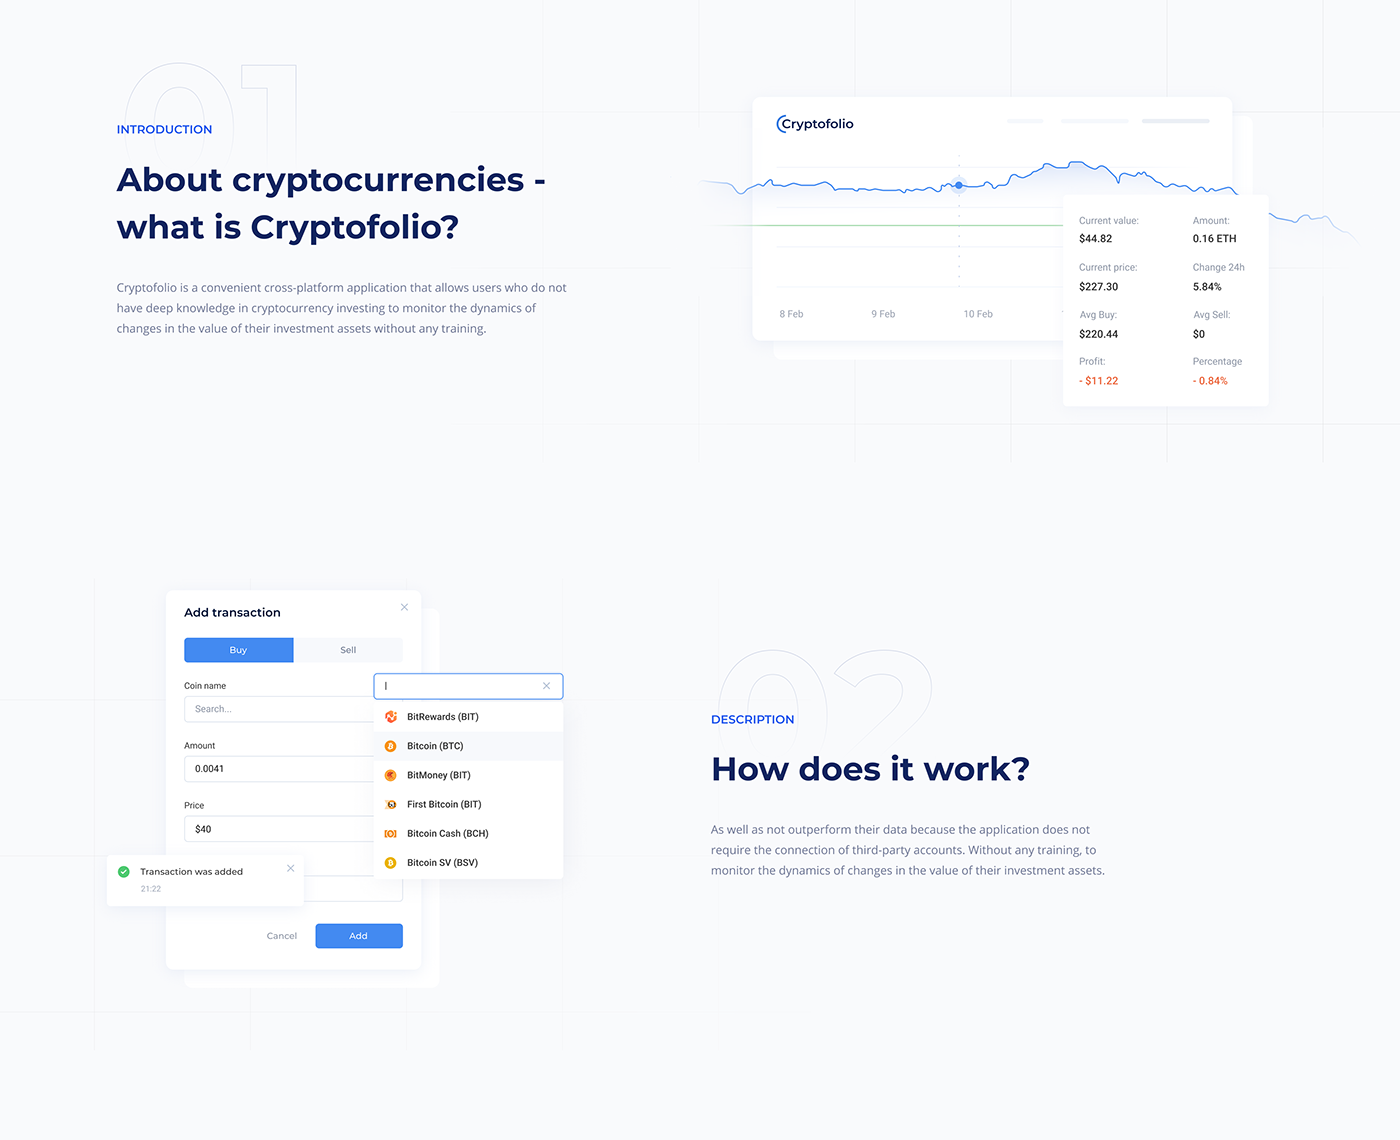 analytics coin cryptocurrency cypto Investments mvp SAAS Transactions WALLET